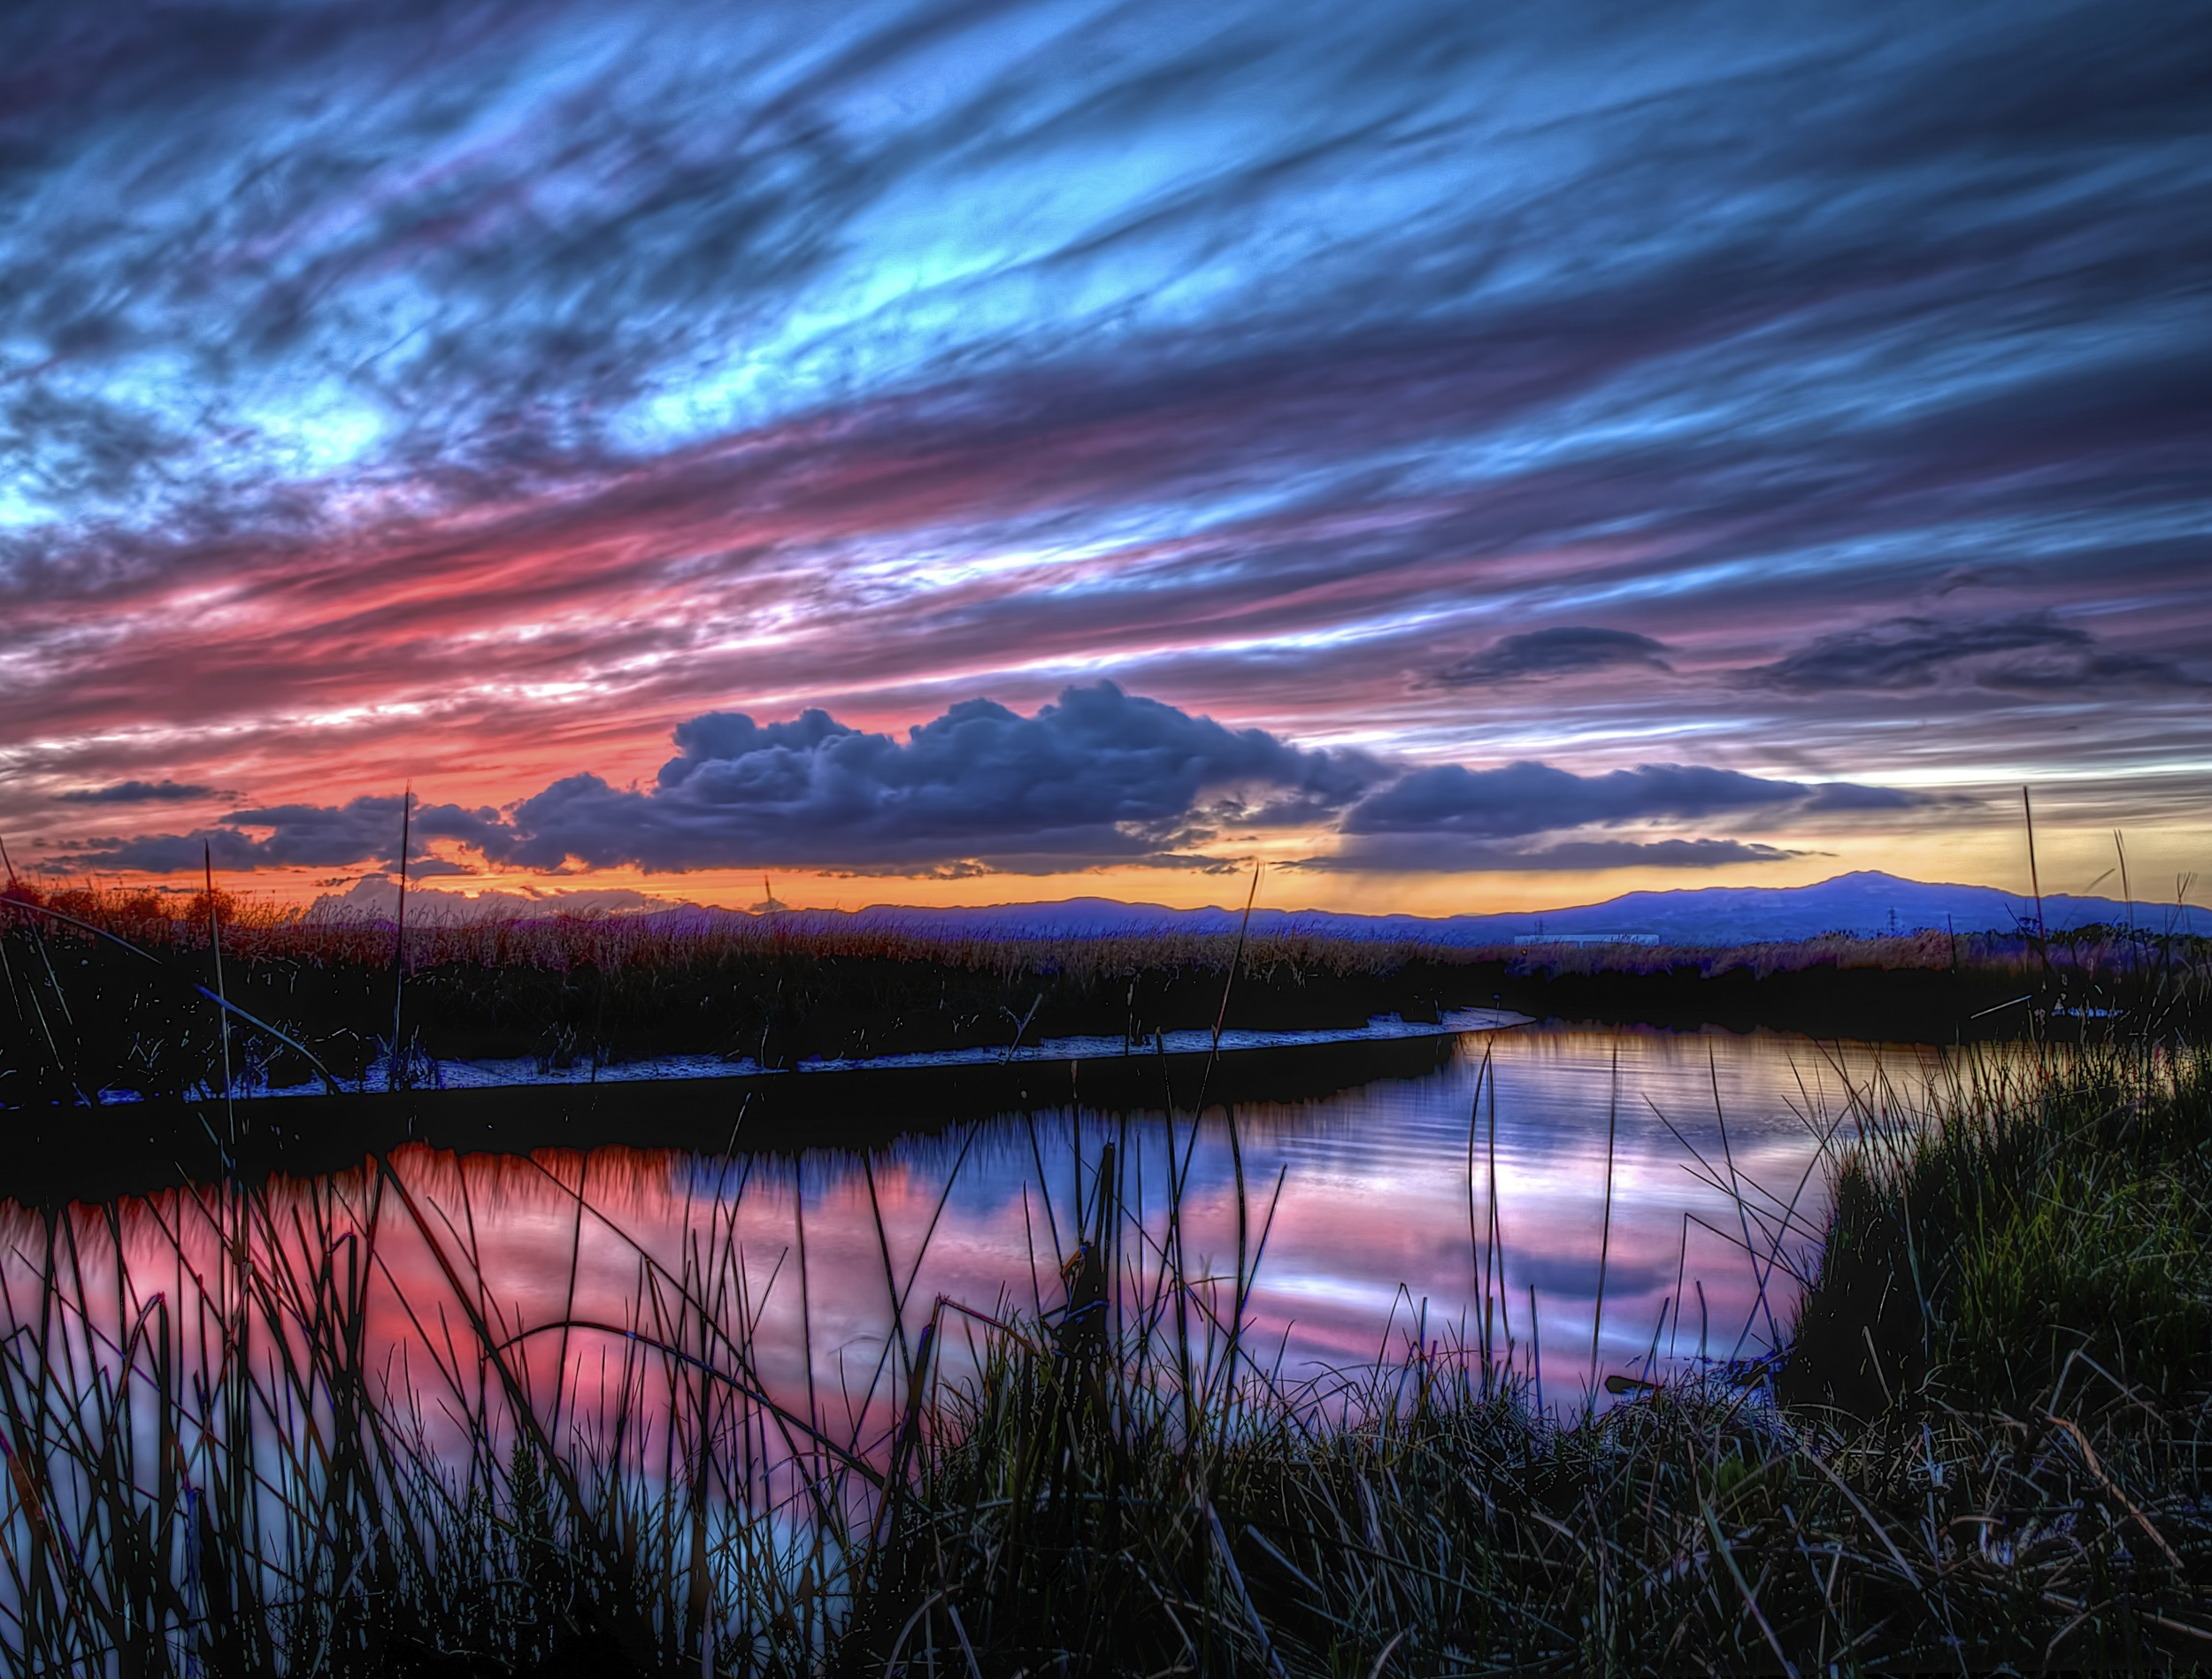 A cloudy sky yields a colorful sunset. Blue, pink and purple in the skies and reflected in the water.